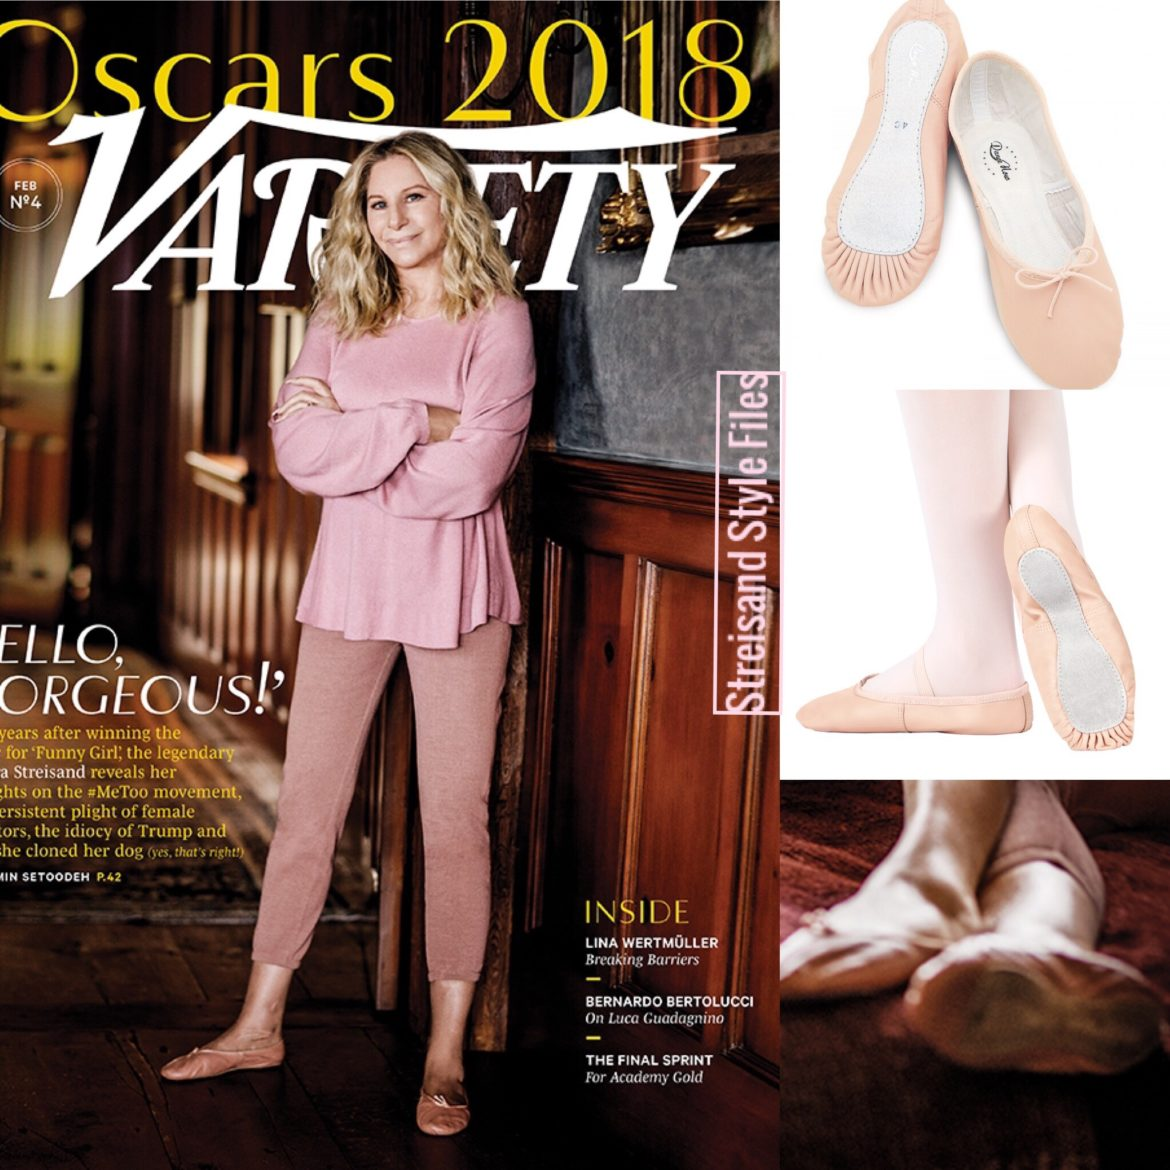 2018 Variety Magazine In Ballet Slippers